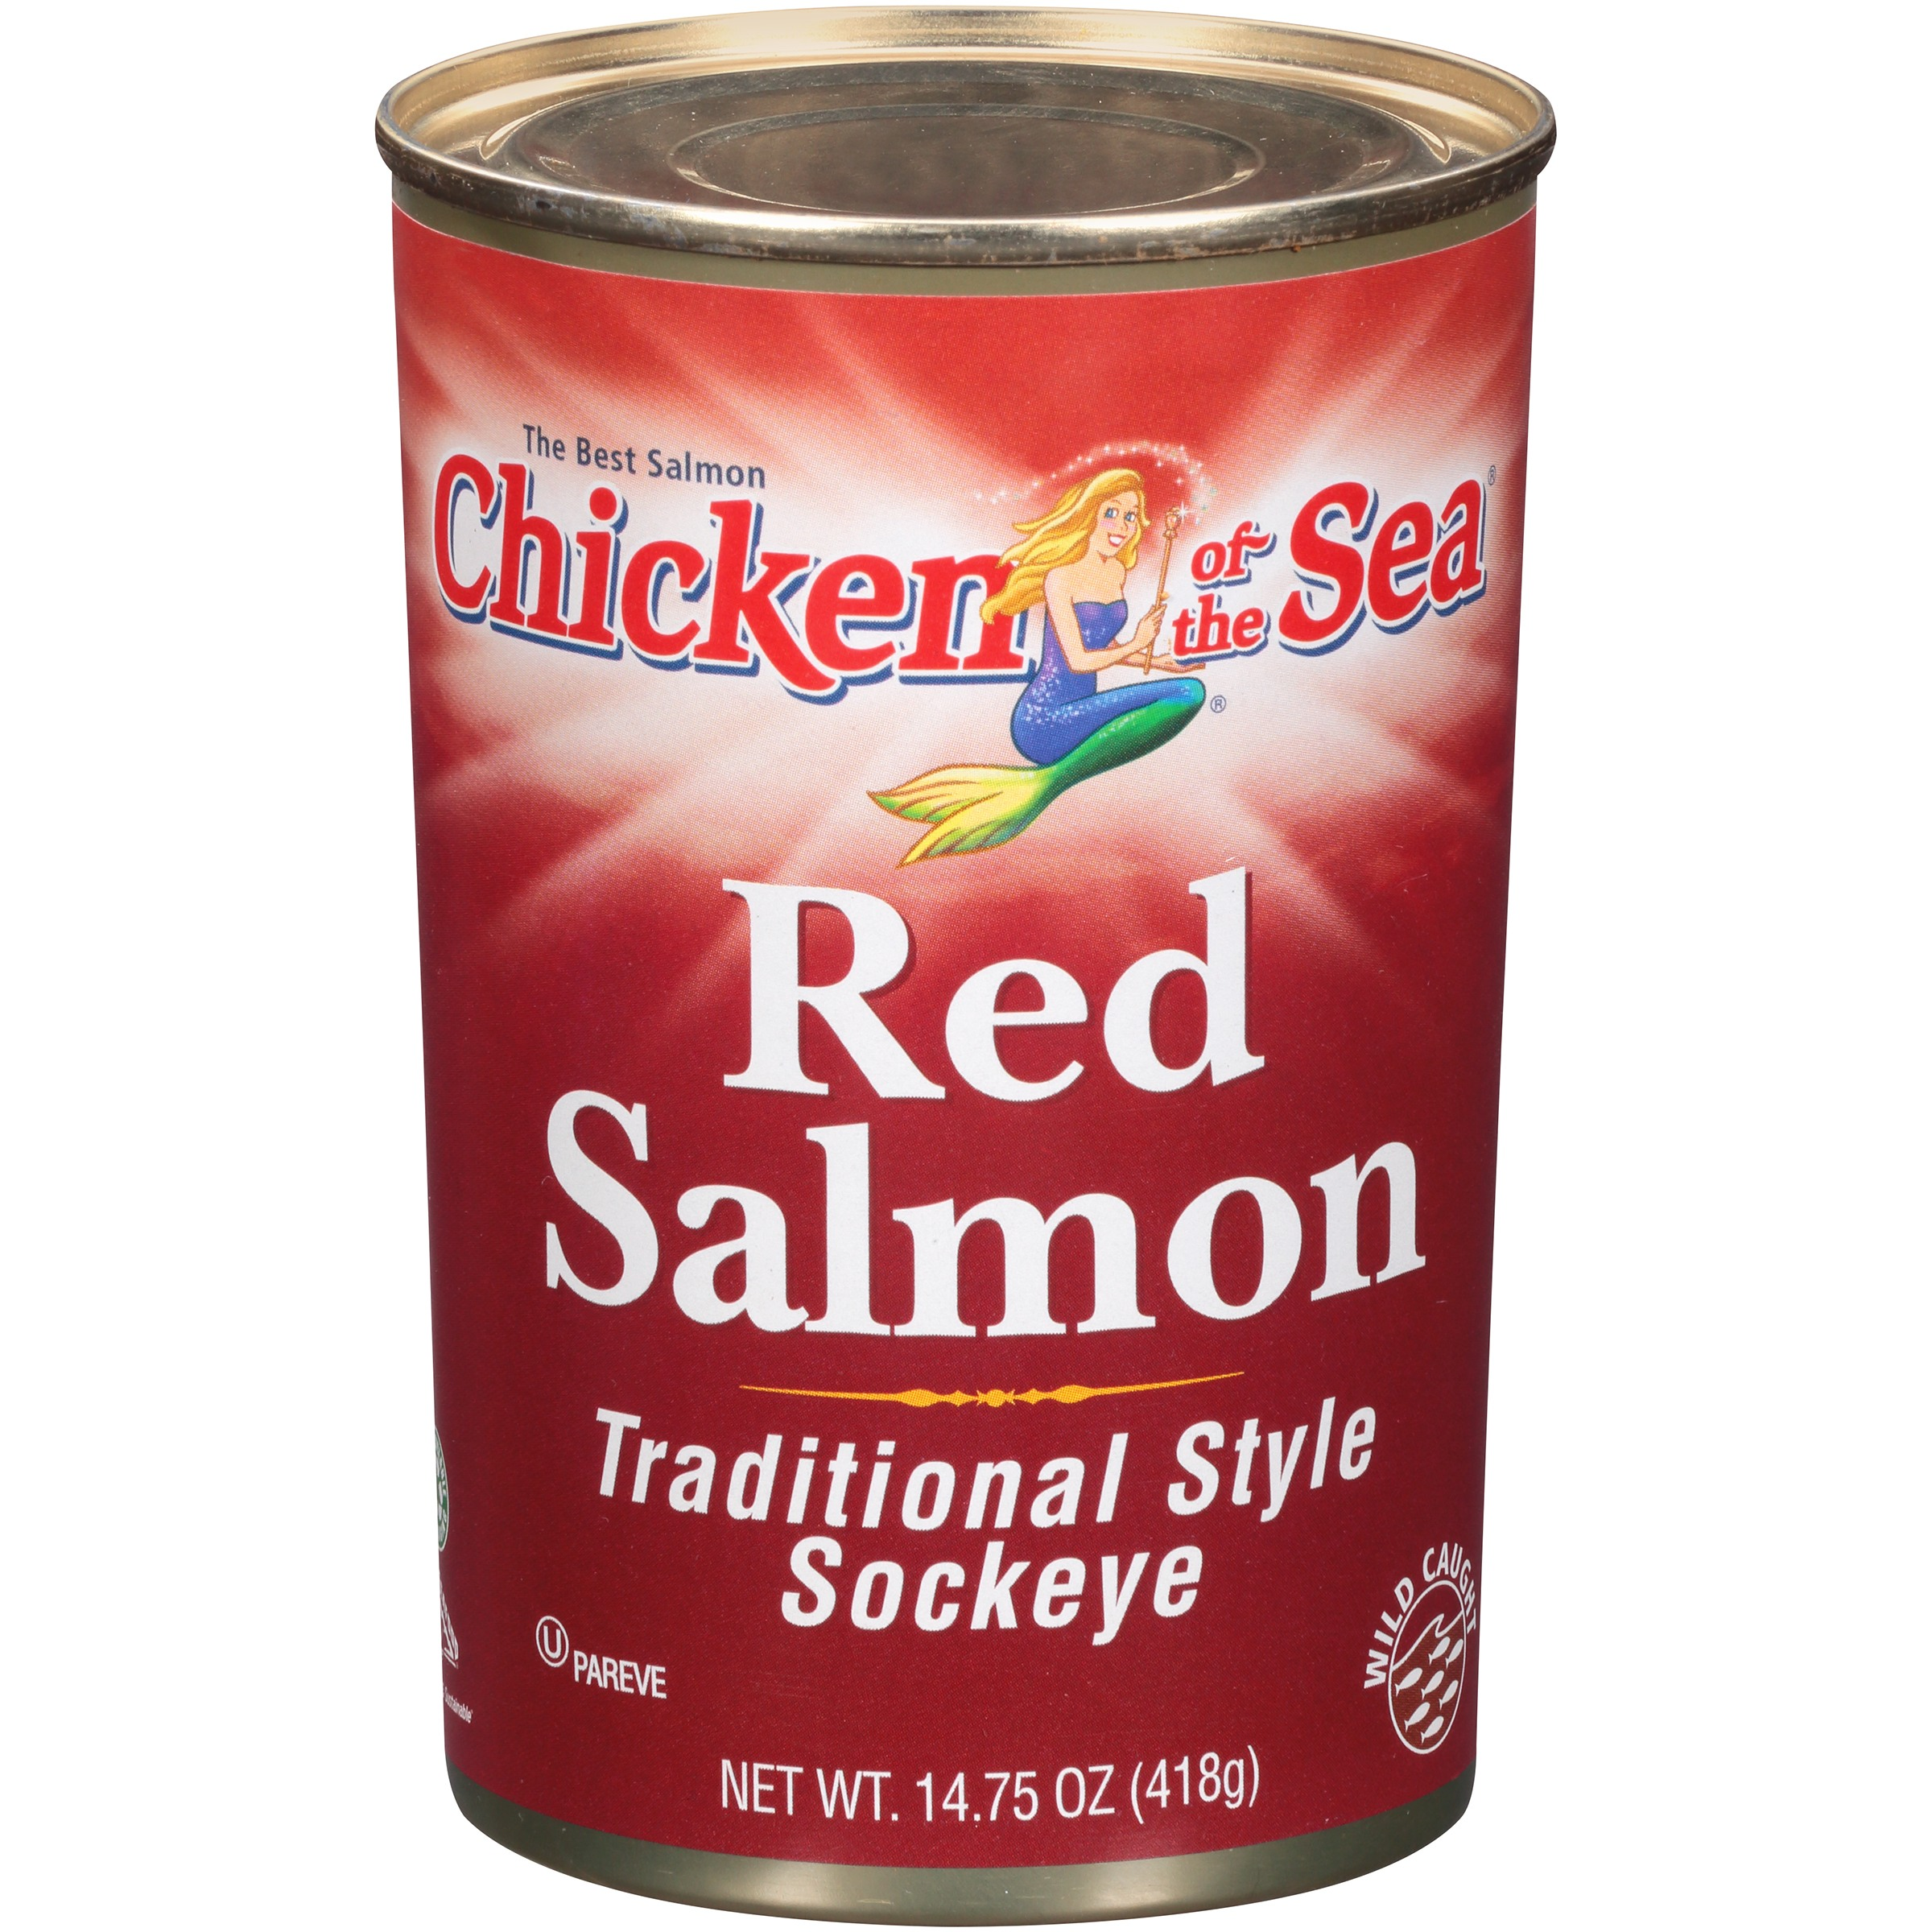 Chicken Of The Sea Red Salmon Traditional Style Sockeye, 14.75 OZ by Chicken of the Sea Intl.